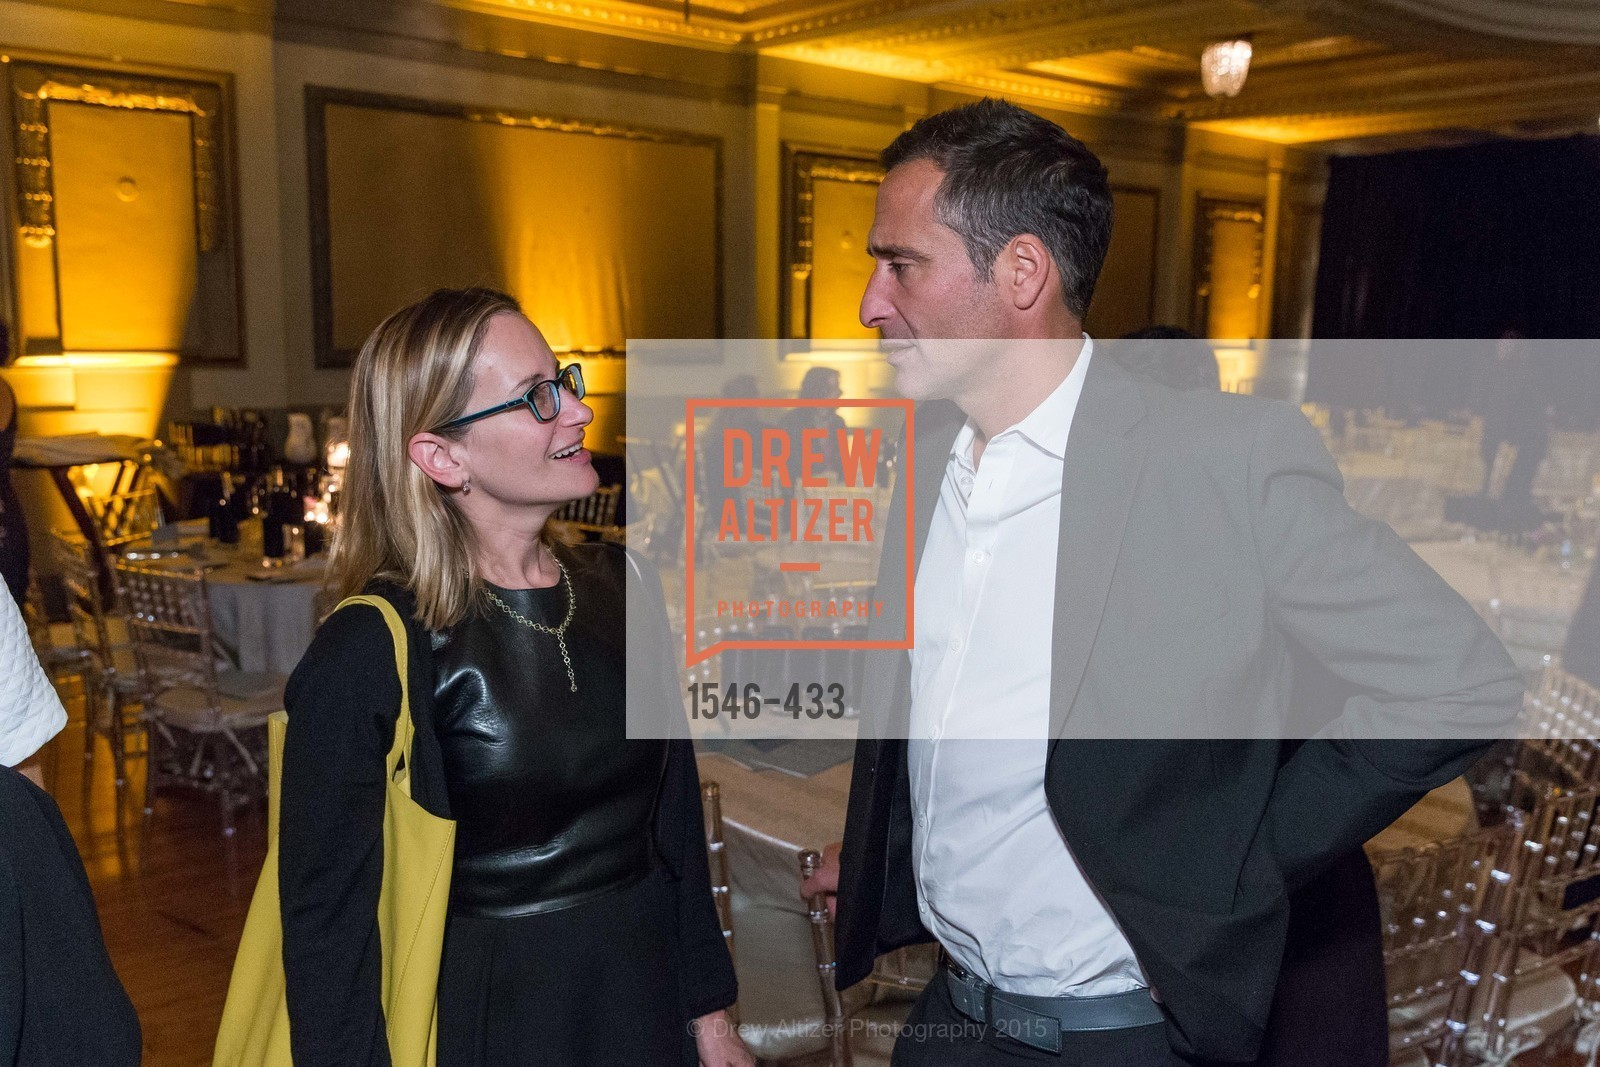 Extras, SFMOMA Contemporary Vision Award, November 3rd, 2015, Photo,Drew Altizer, Drew Altizer Photography, full-service agency, private events, San Francisco photographer, photographer california